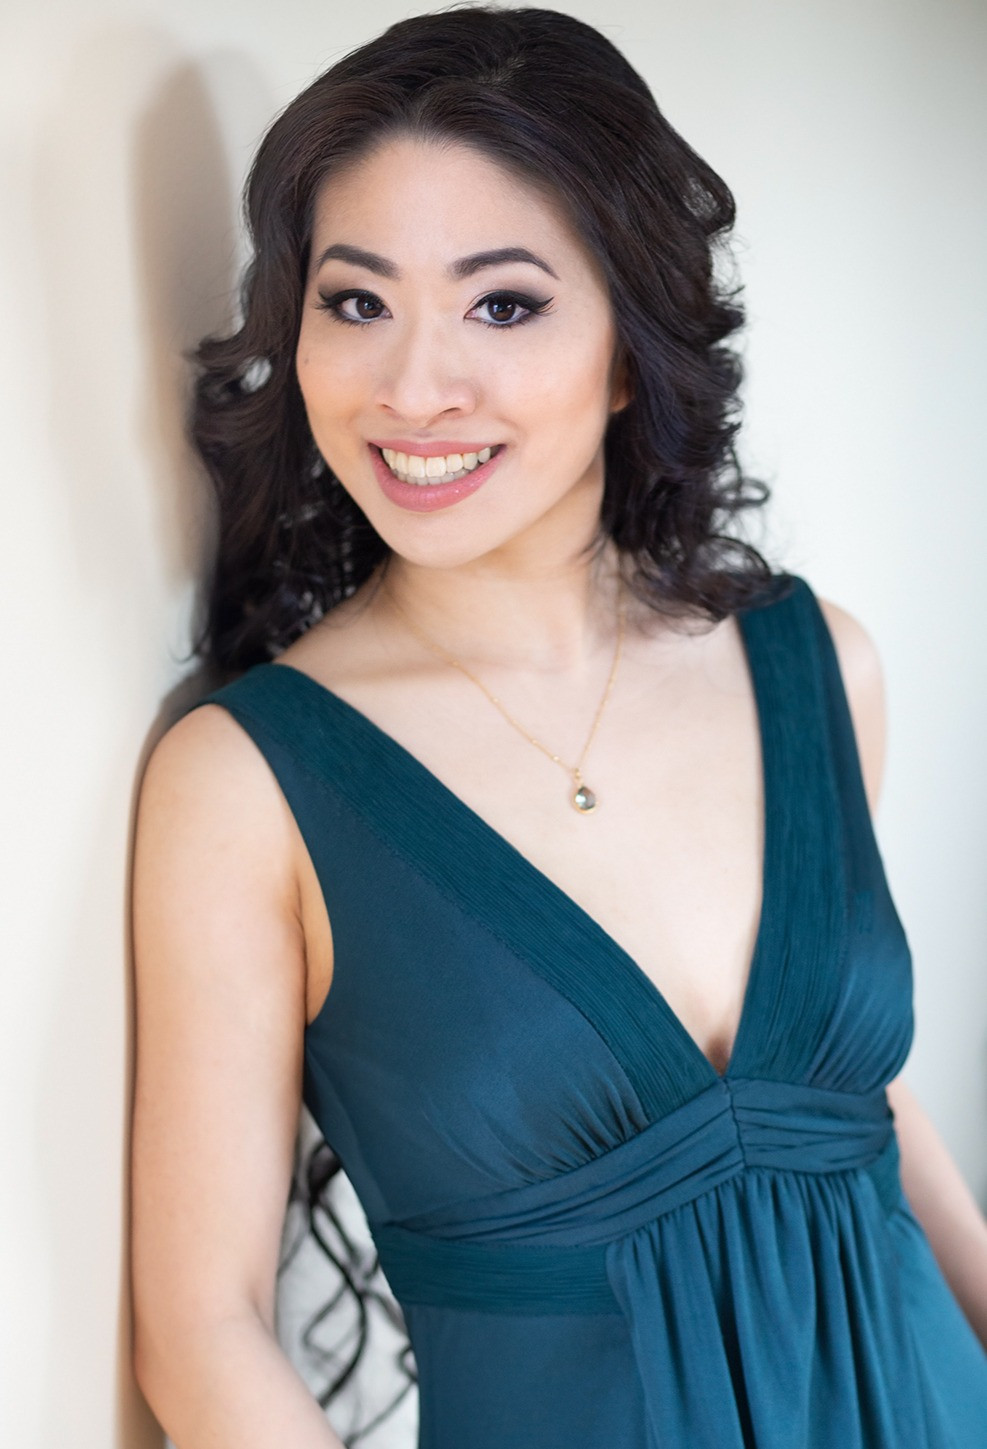 Stephanie Ko of Opera Mariposa smiles for the camera while wearing a green dress